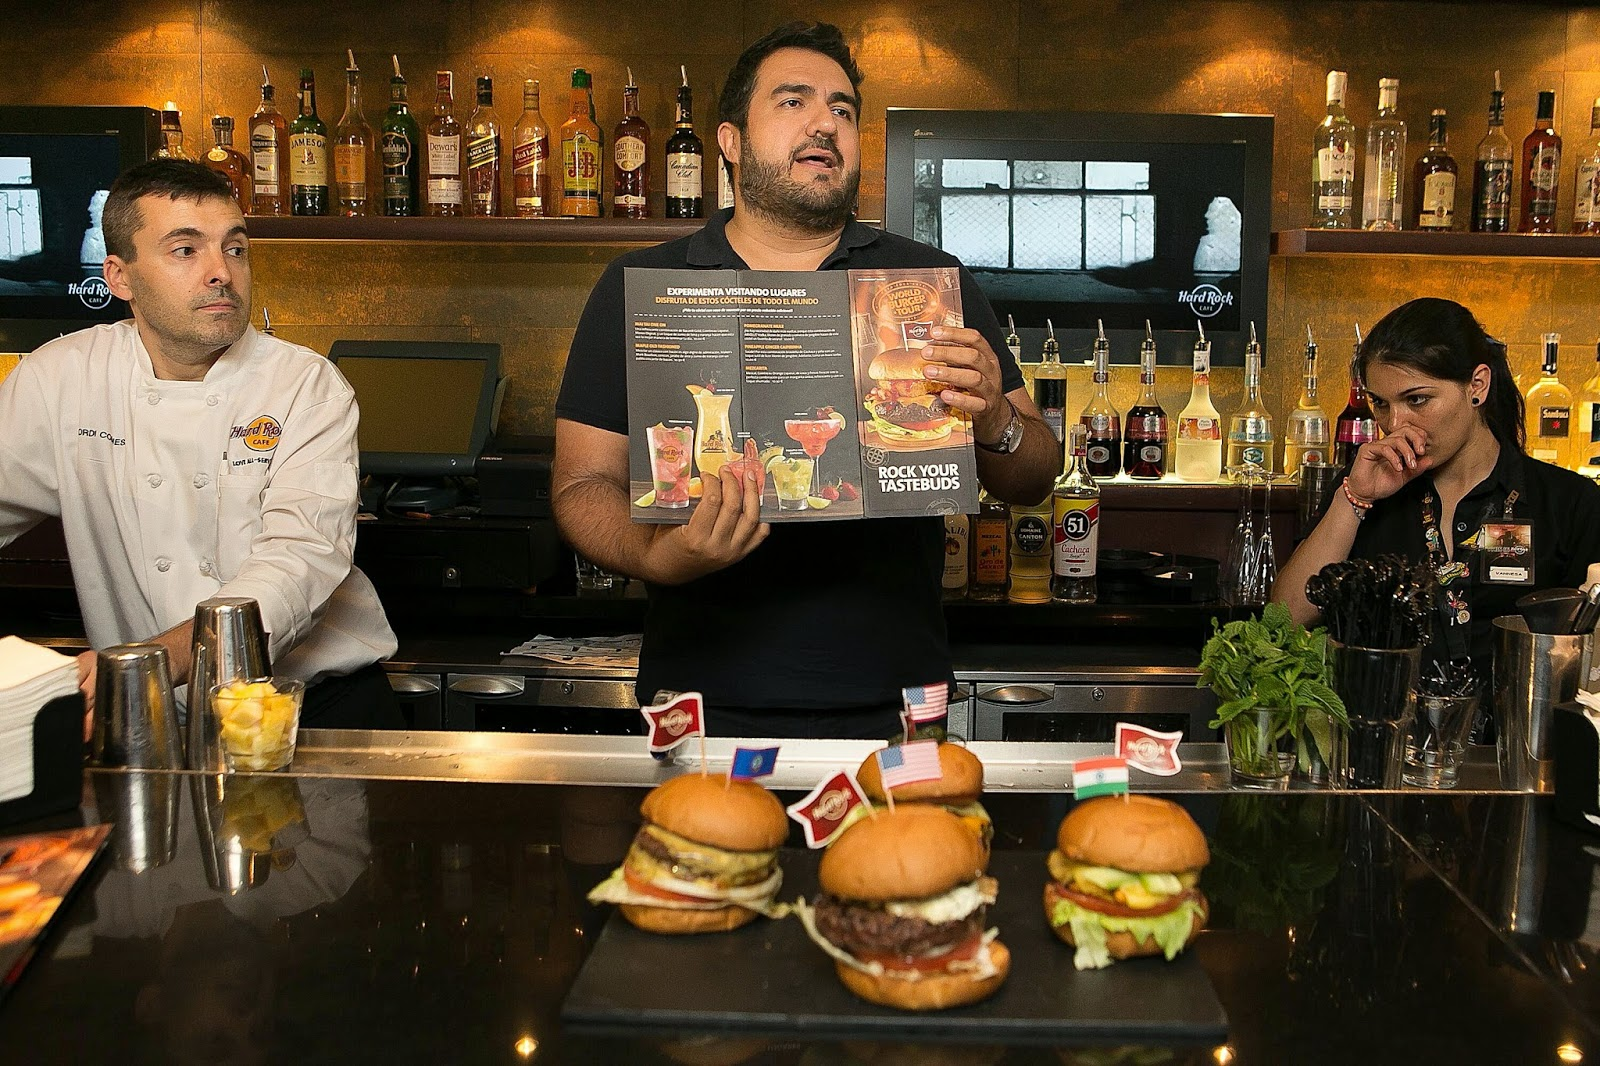 Hardrock cafe Barcelona Burguer week